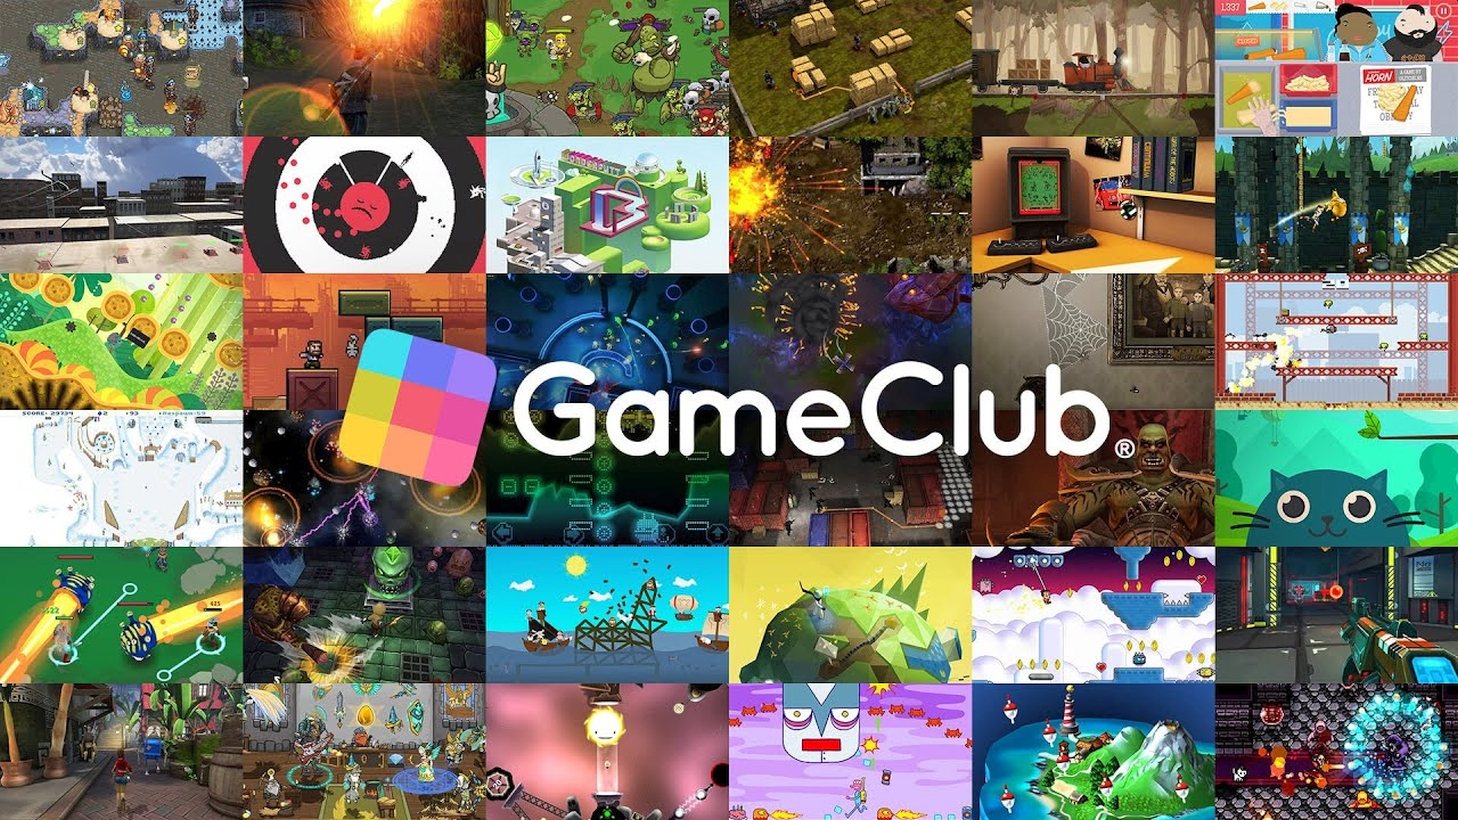 GameClub Introduces Competitive Leagues Feature To Some Games